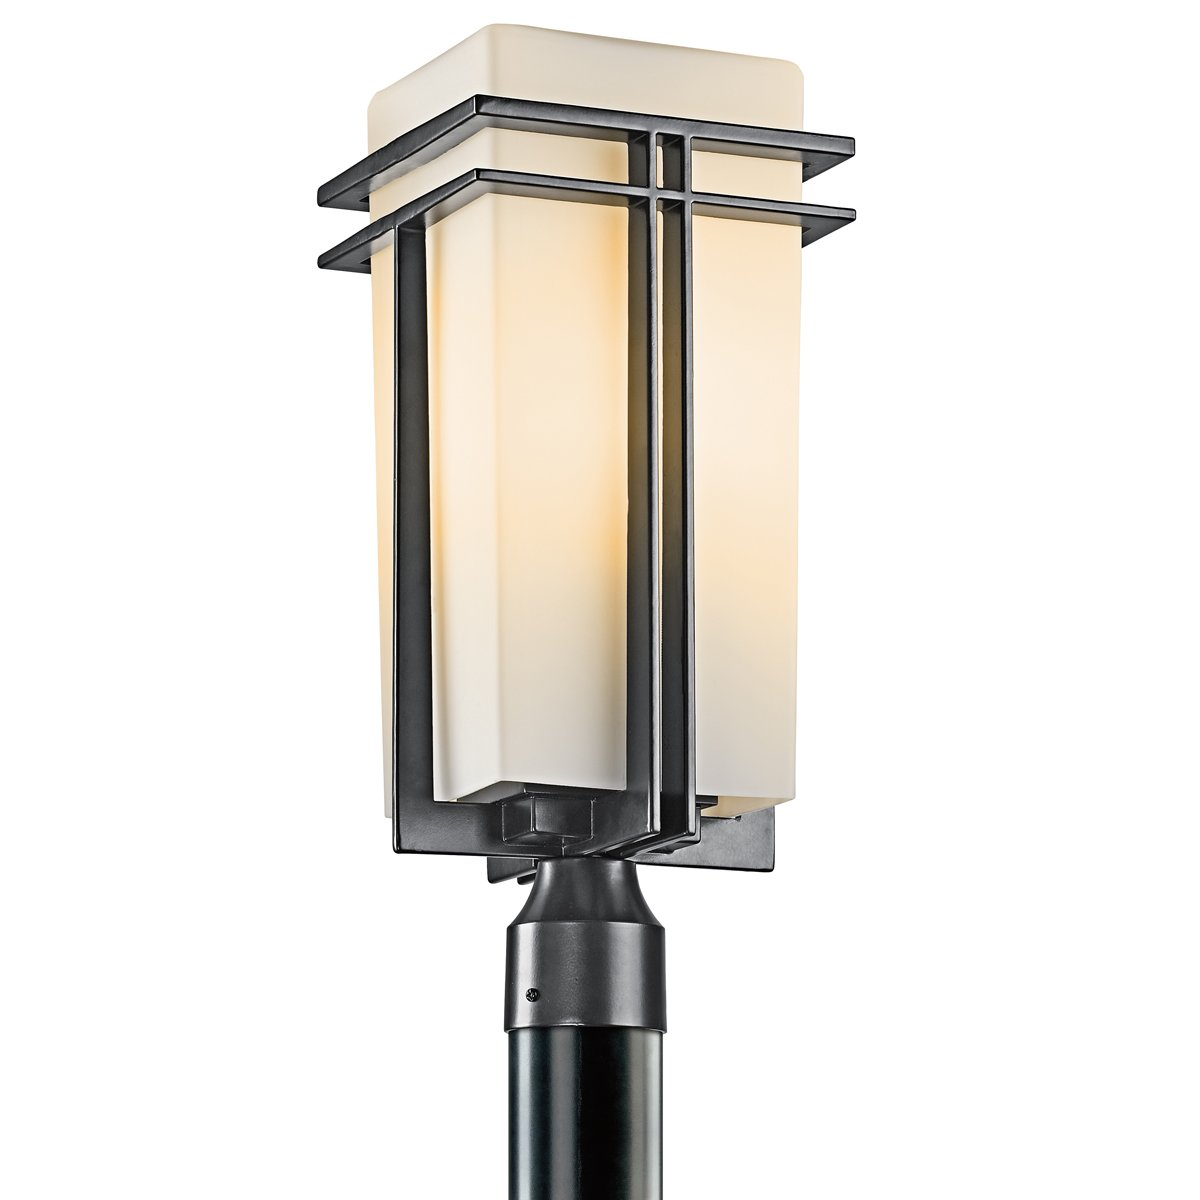 Kichler 49207BK One Light Outdoor Post Mount by Kichler Lighting